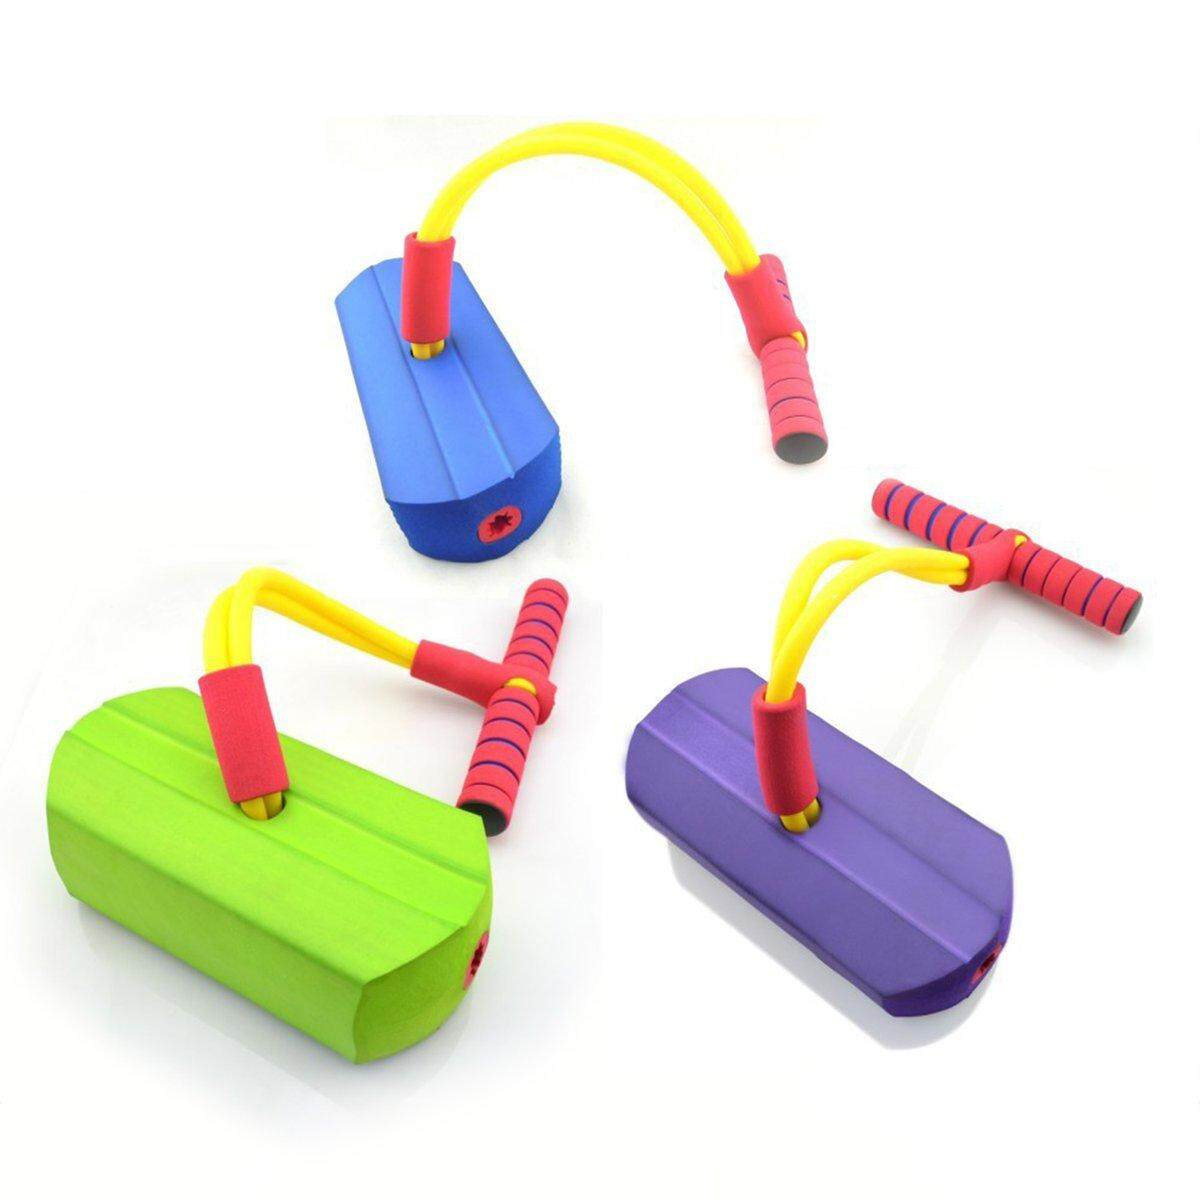 Best Seller Limit Side Handles Features Flashing Led Lights Which Gets Activated Jumper